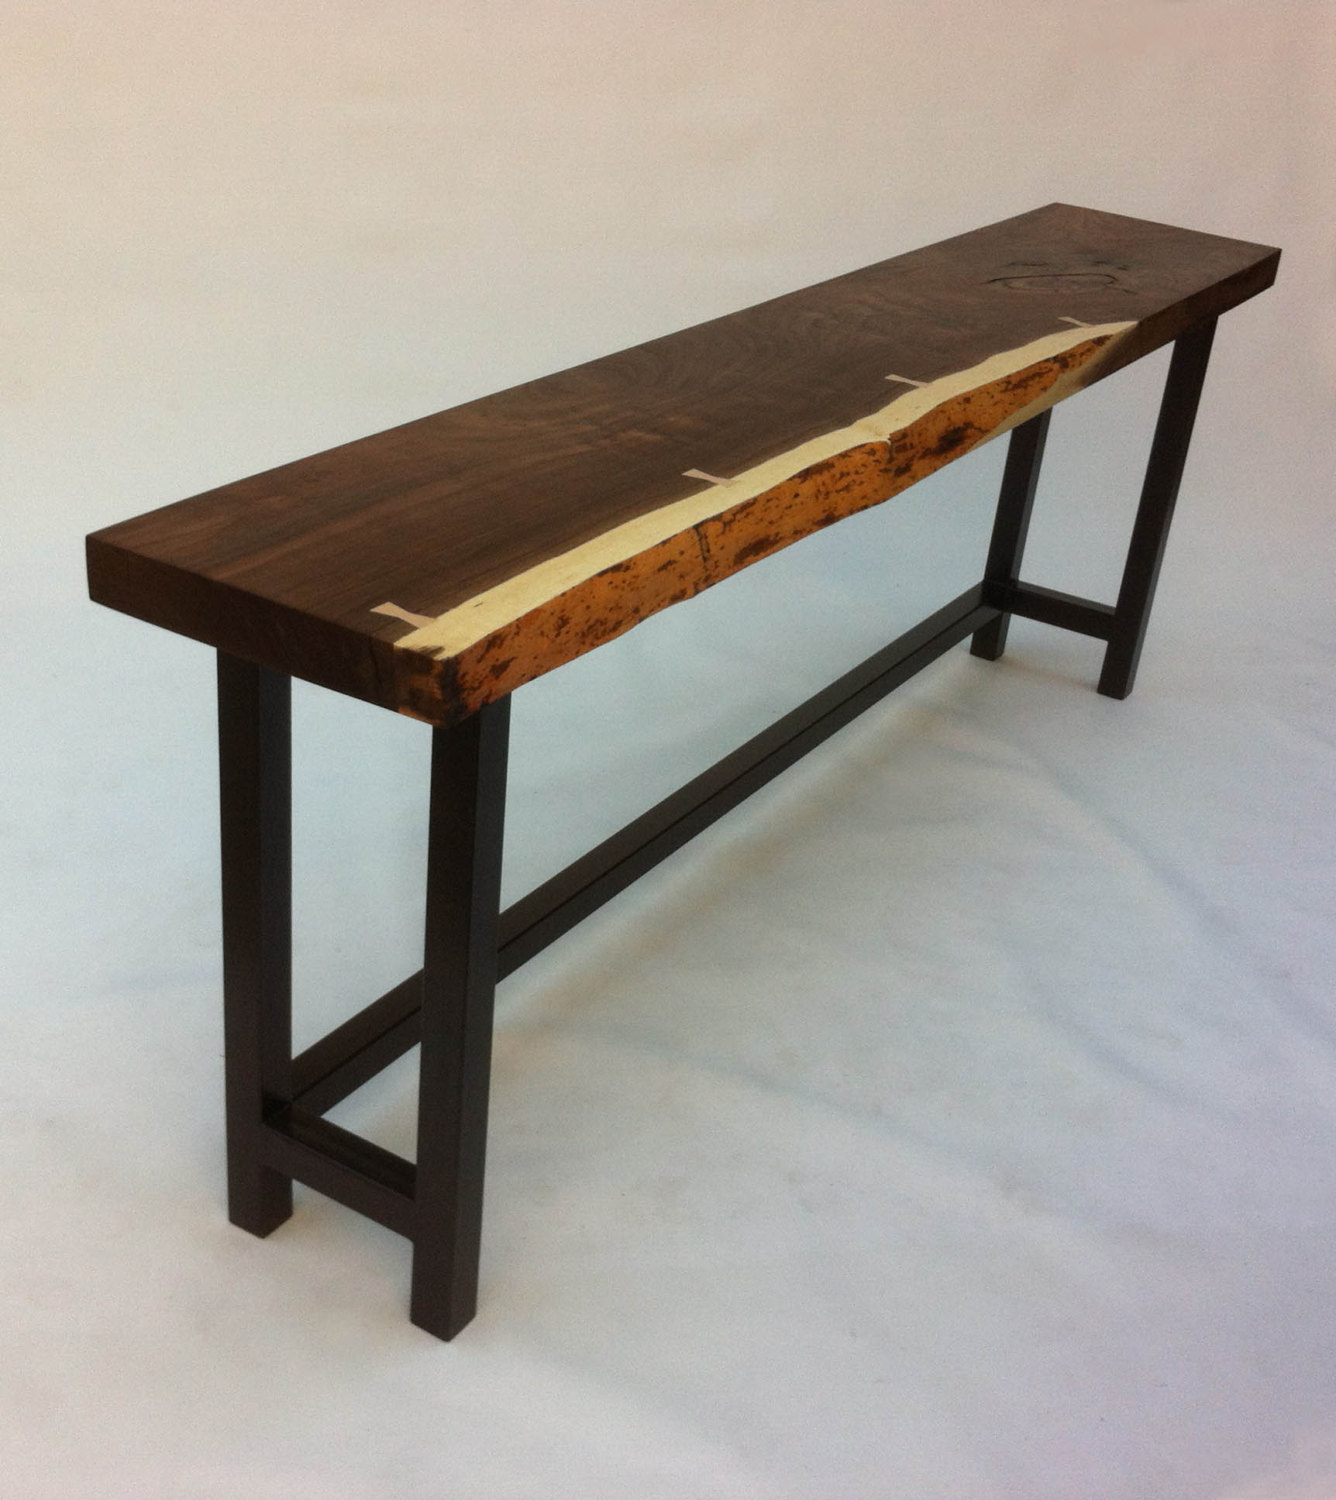 Superieur Natural Live Edge Walnut Slab Hall Table U2013 Contemporary Console In Solid  Rustic Walnut On Metal Base